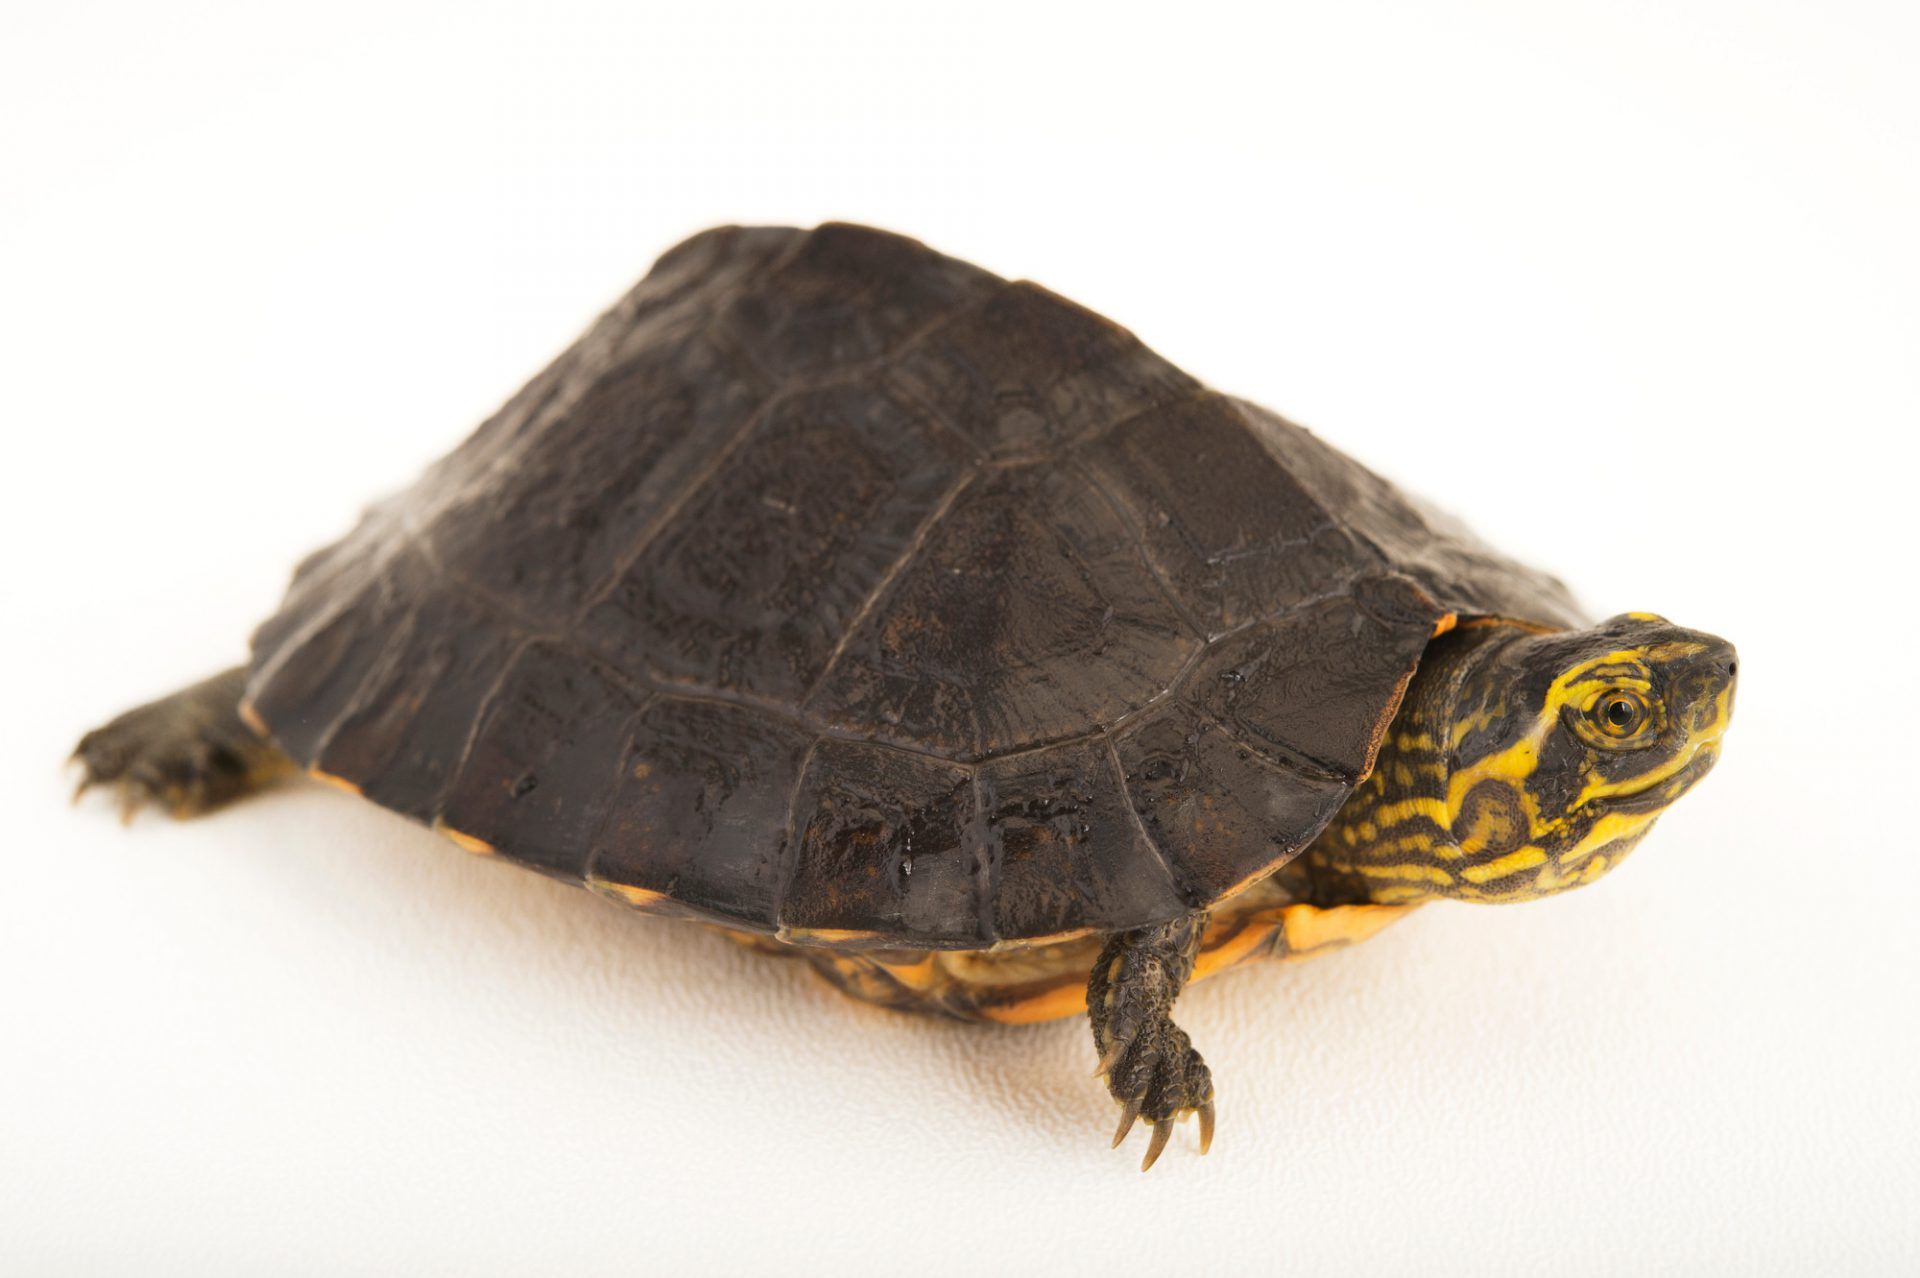 Photo: An endangered yellow-headed temple turtle (Heosemys annandalii).